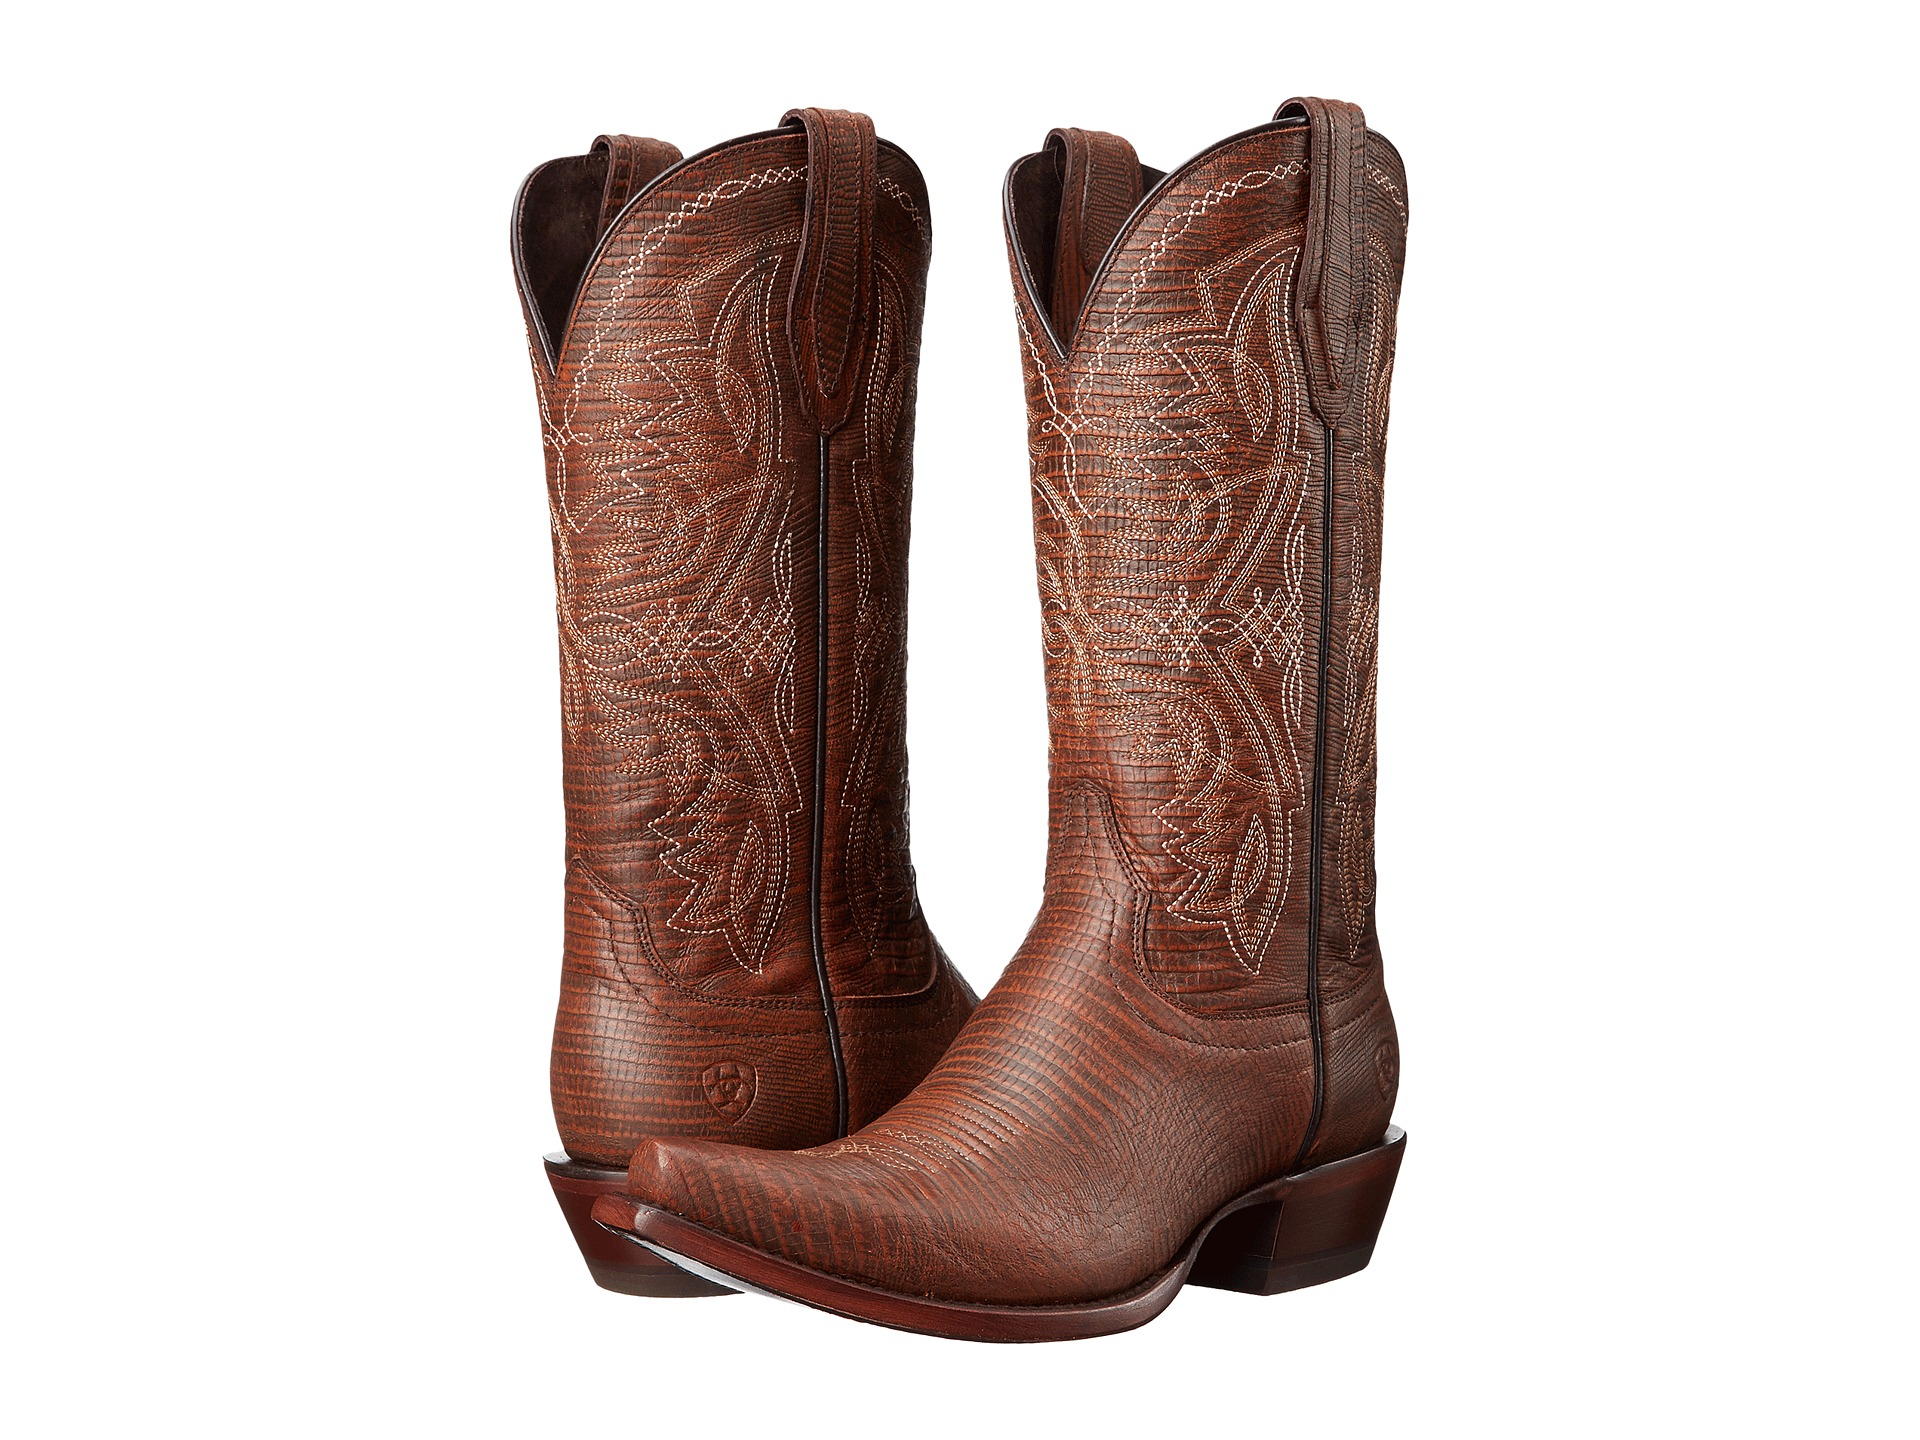 Ariat, Shoes at 6pm.com